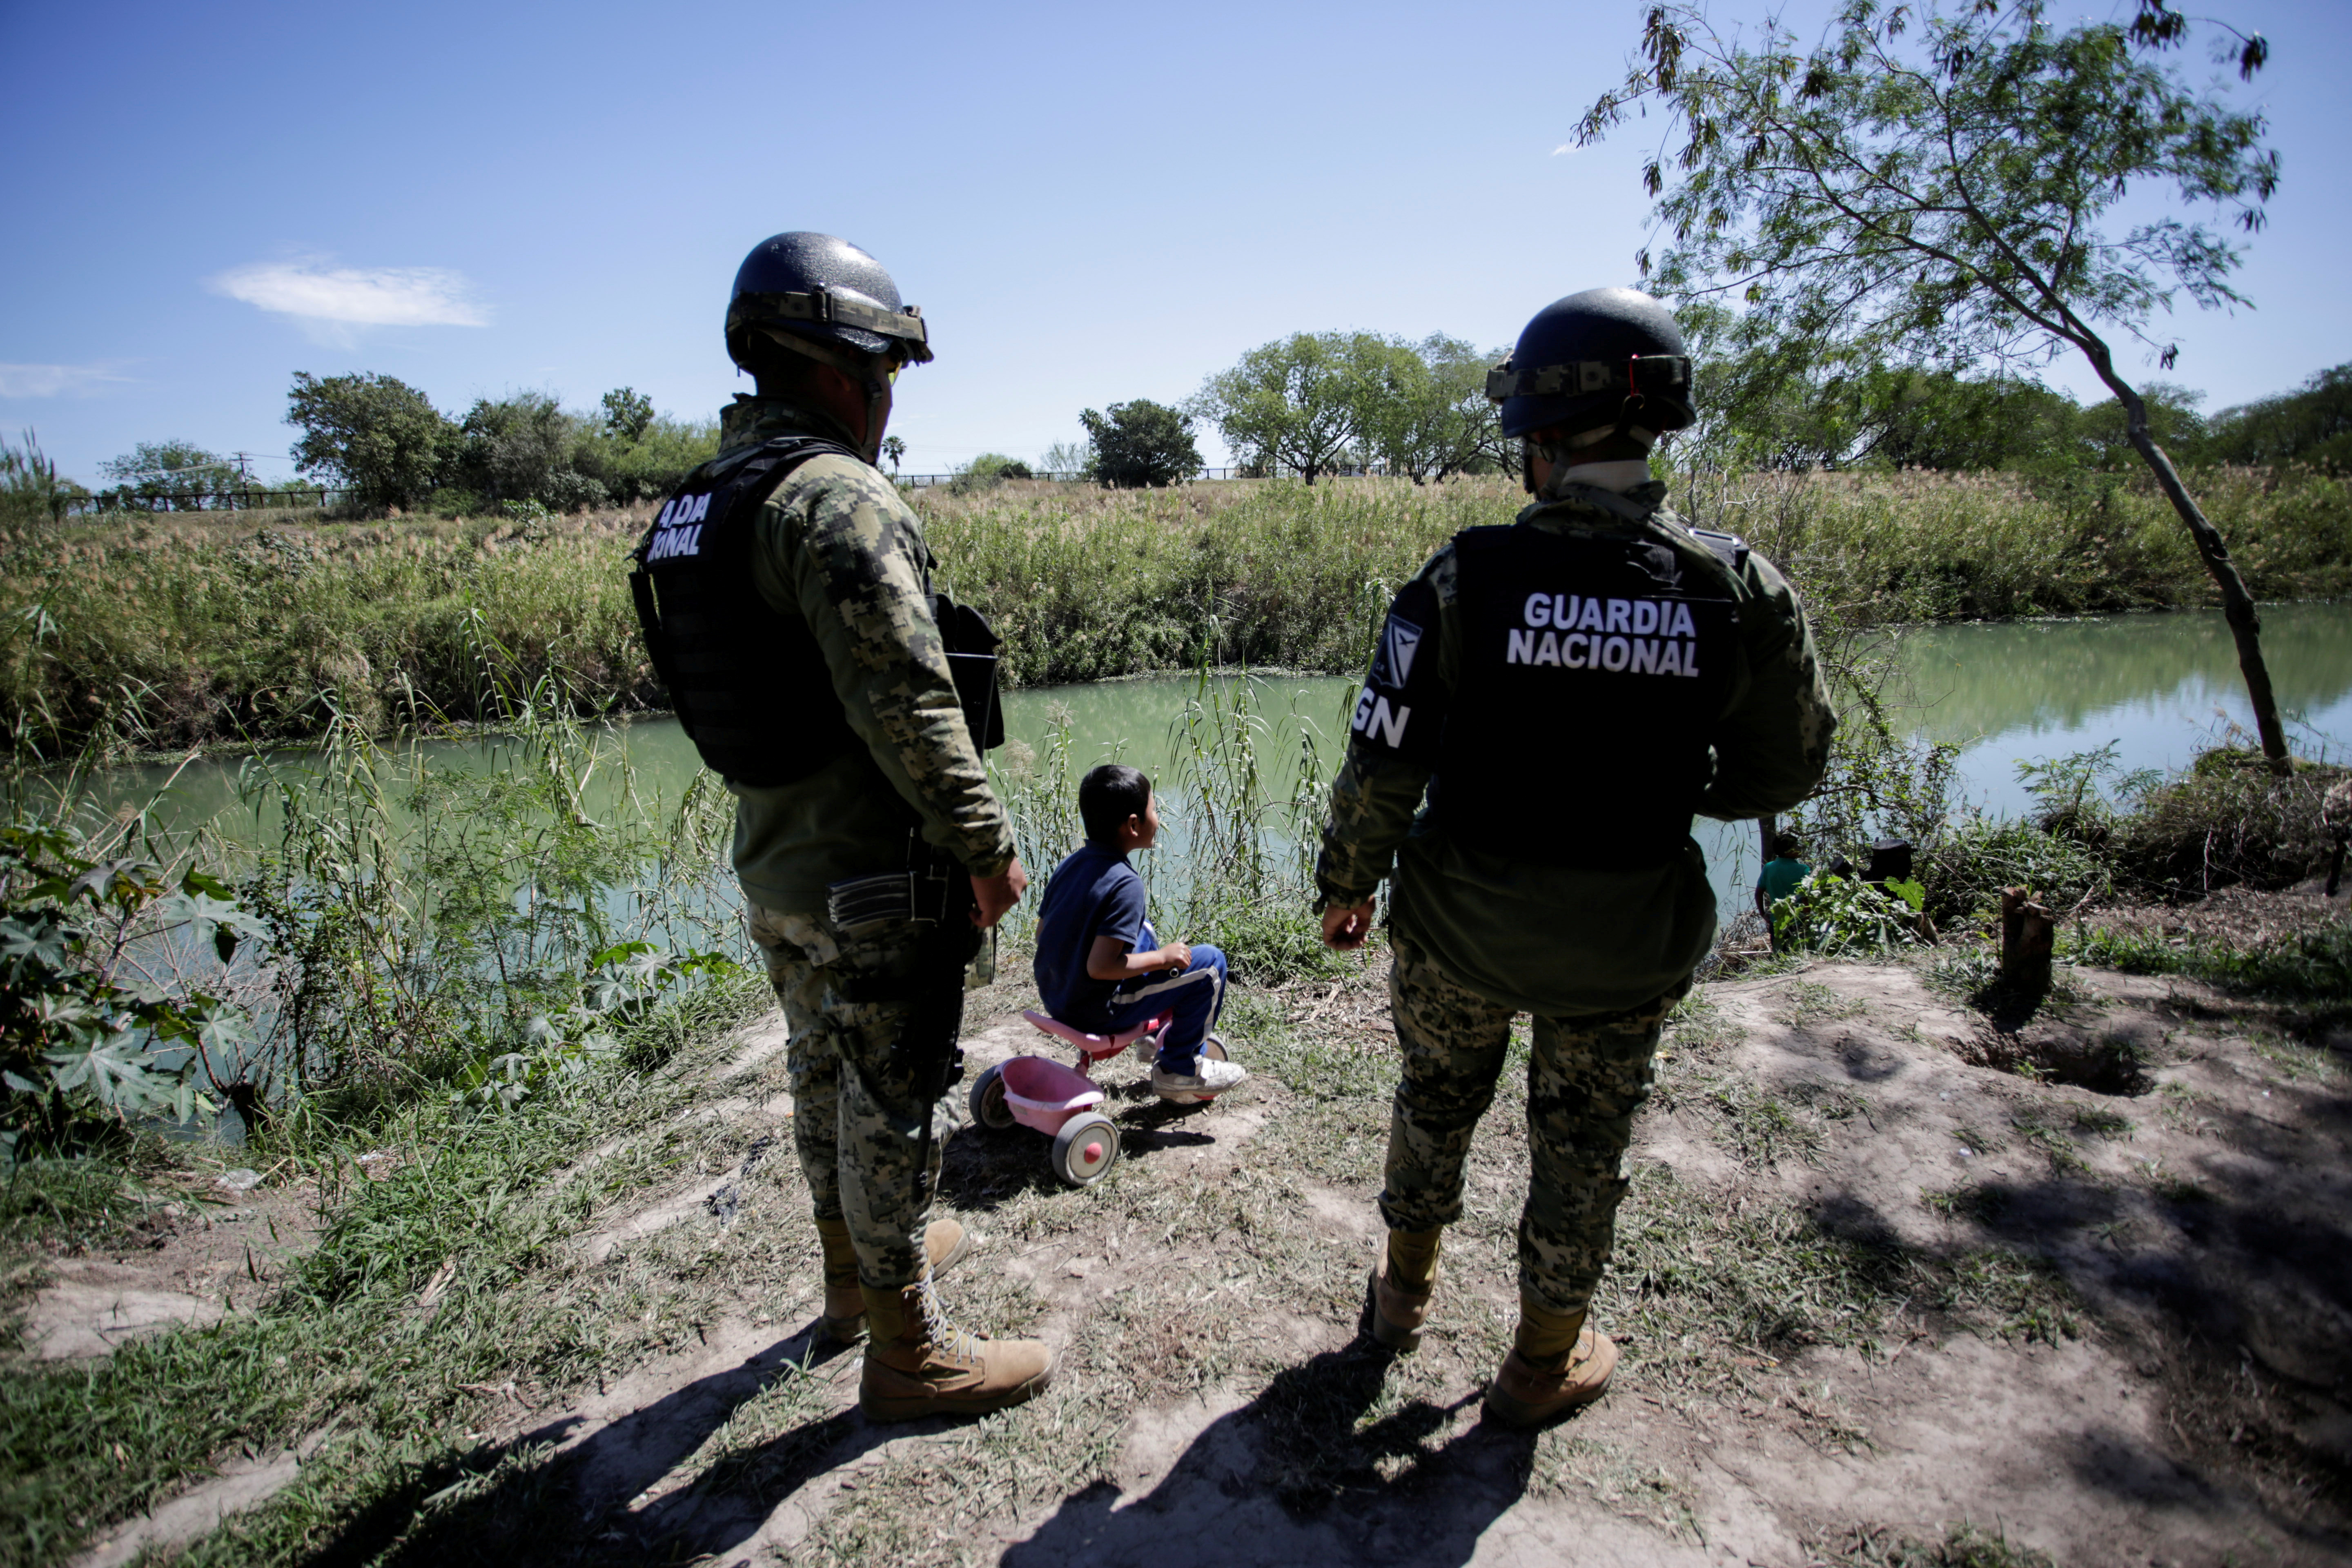 A migrant boy, an asylum seeker sent back to Mexico from the U.S. under the